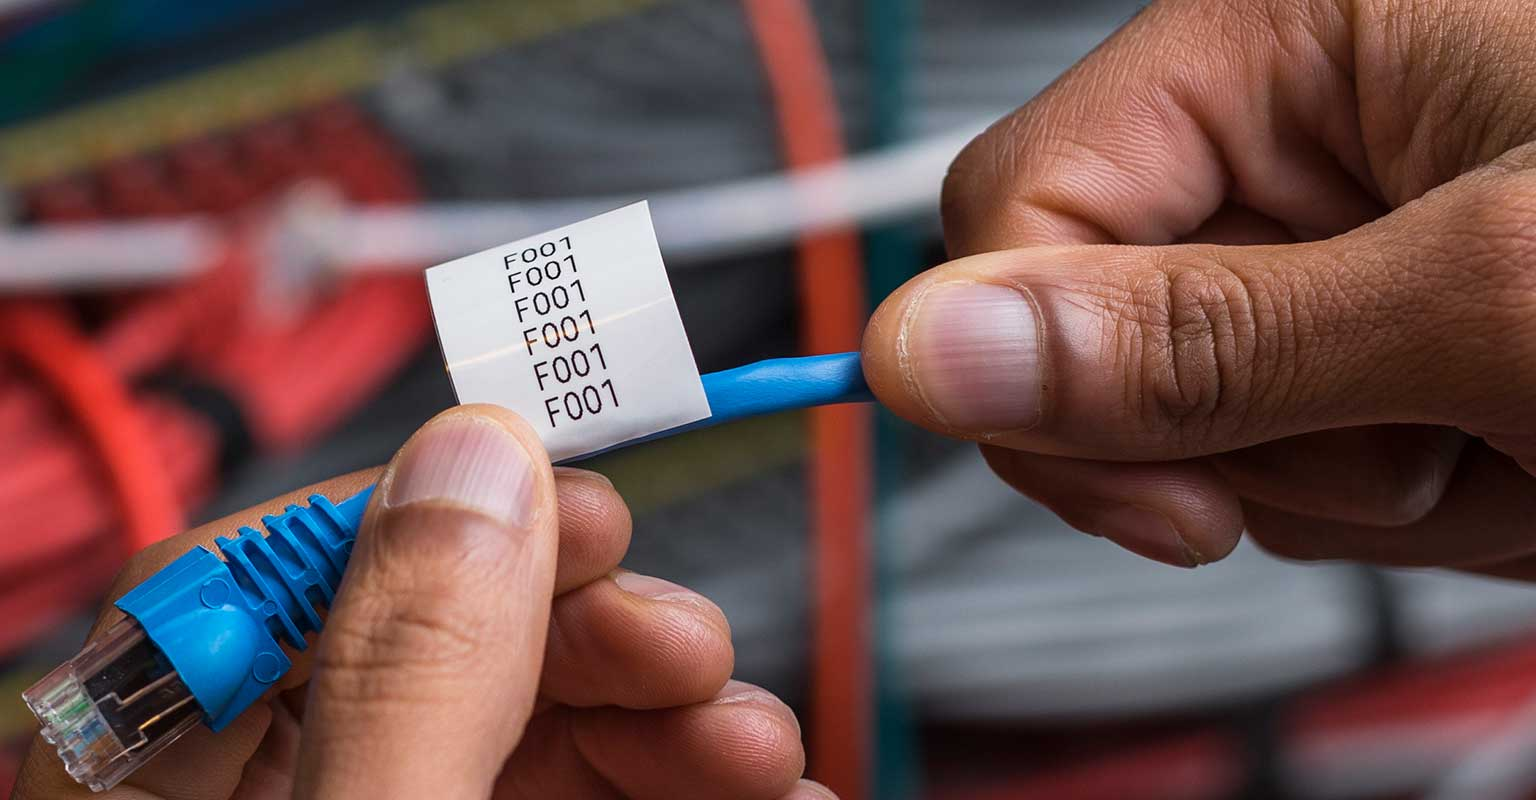 Brother TZe cable label being prepared for wrapping around network cable